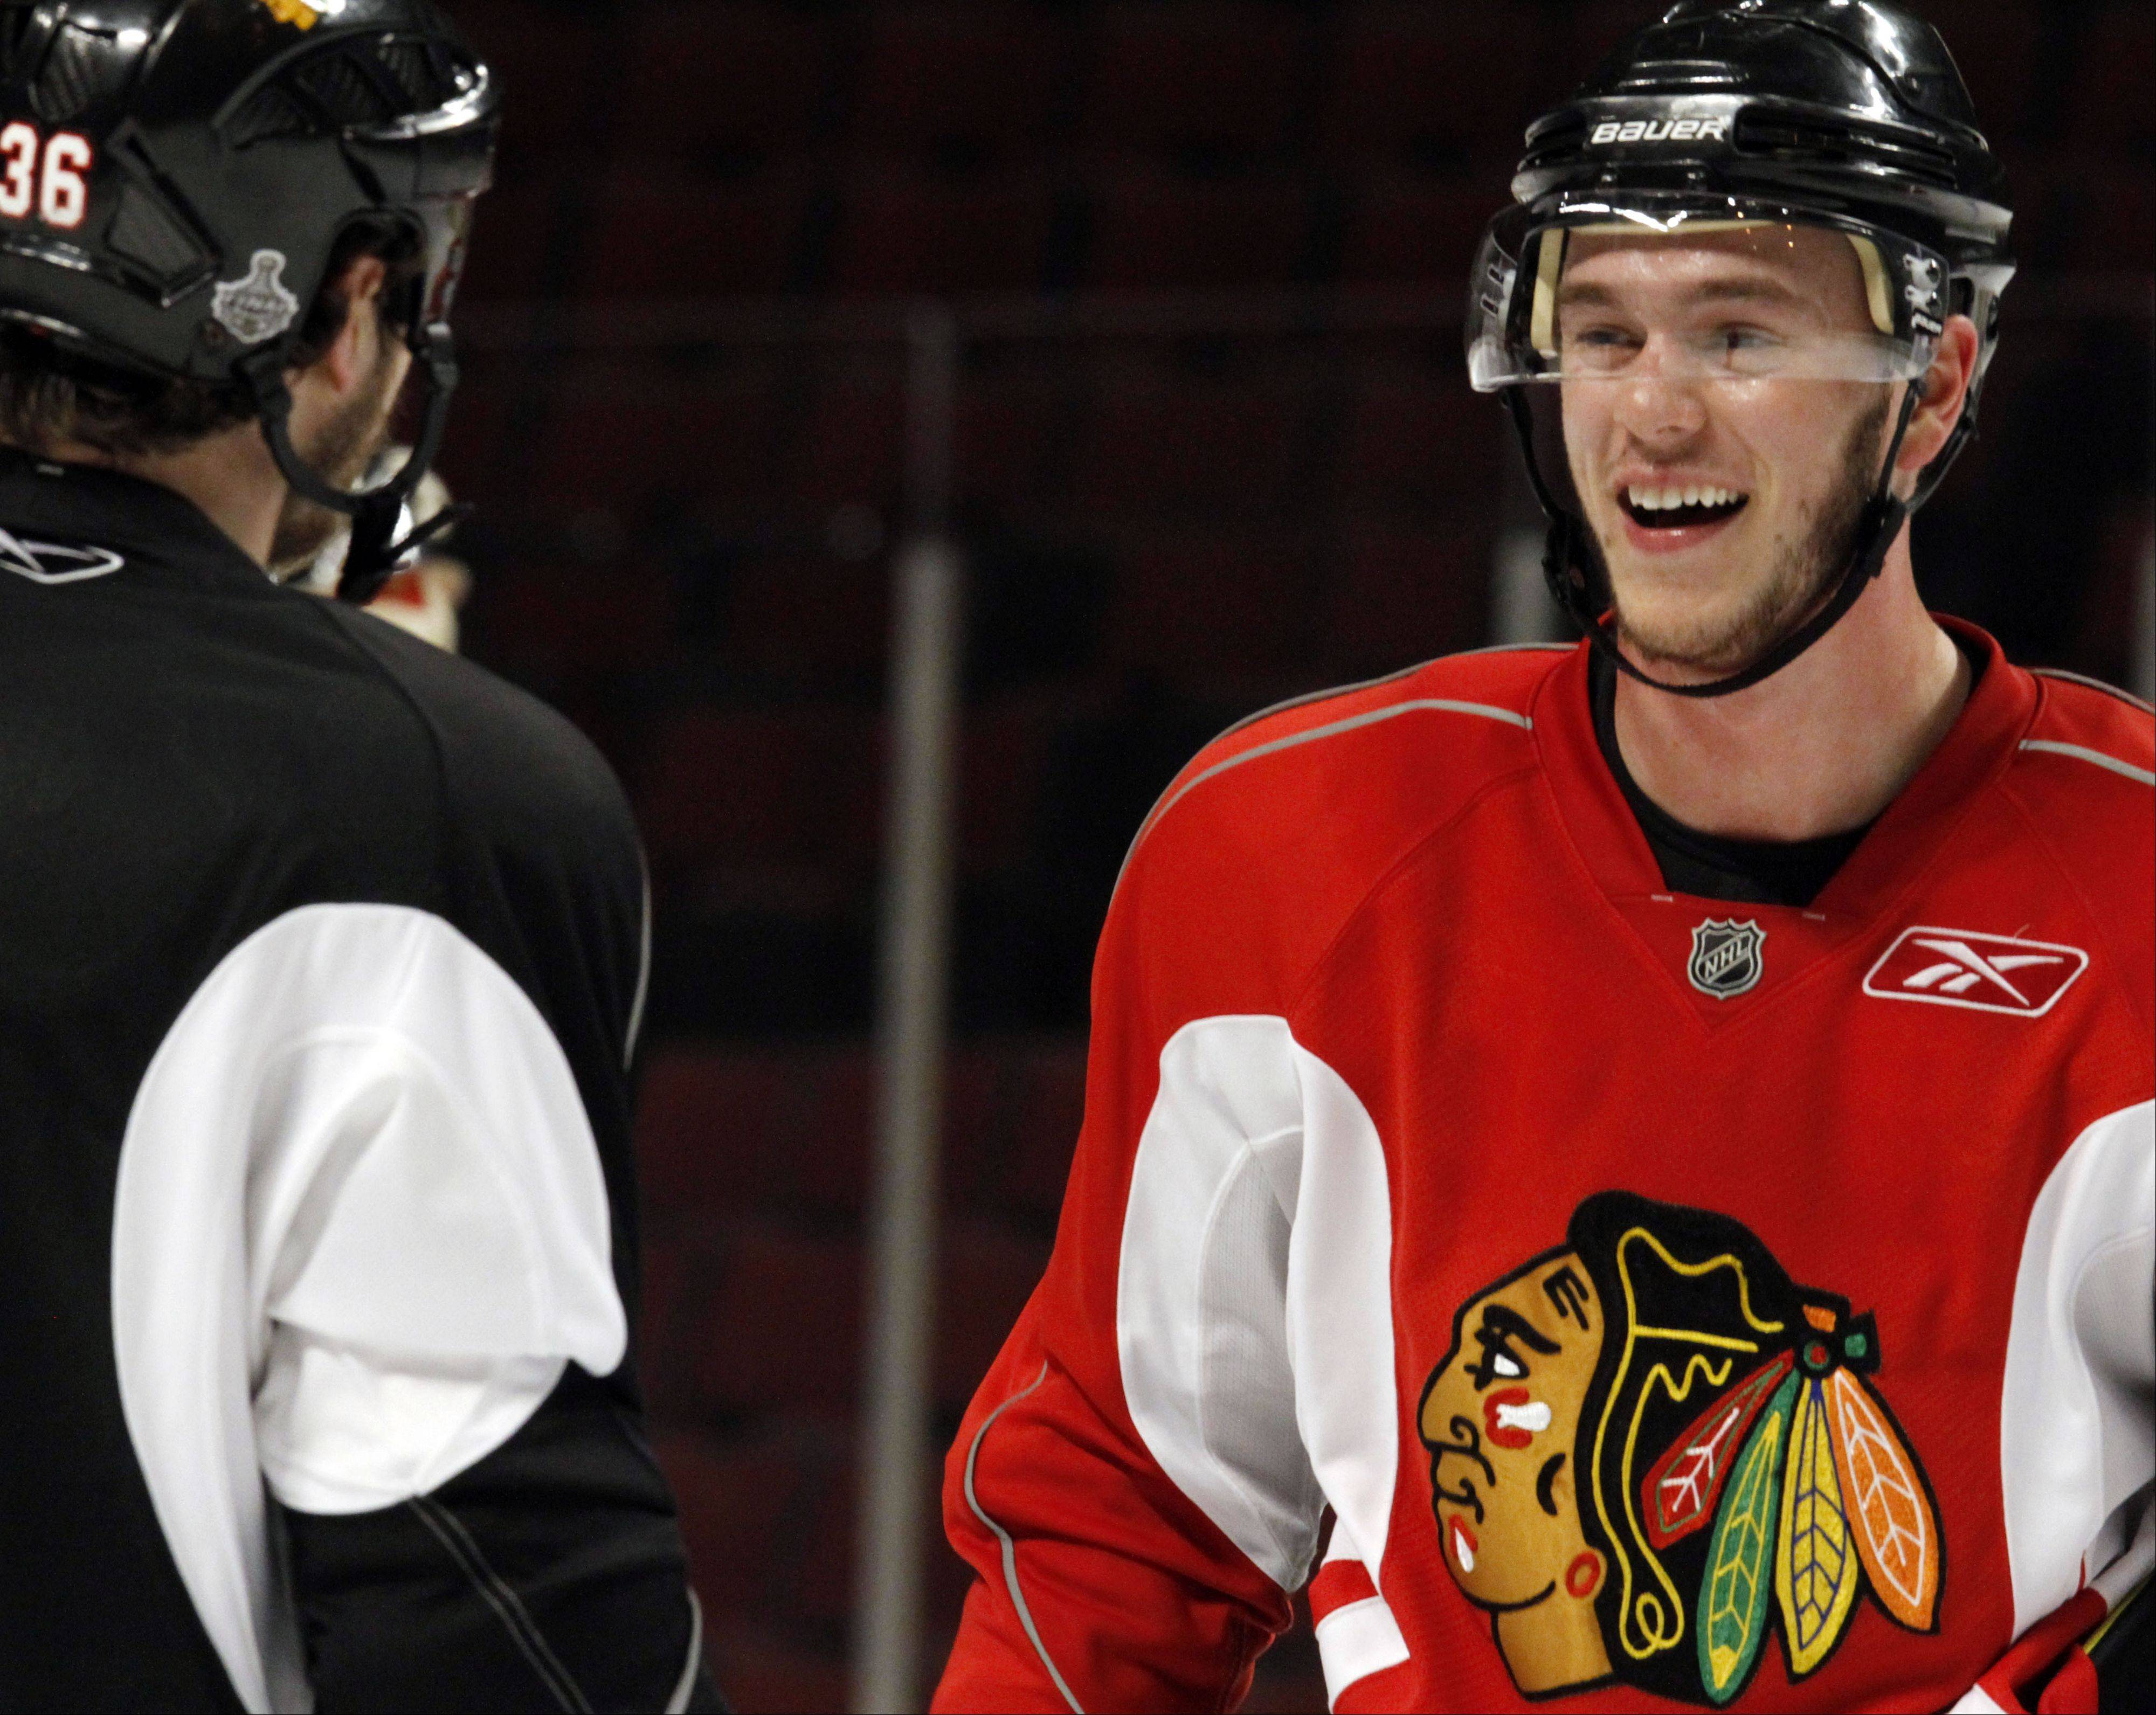 "Blackhawks captain Jonathan Toews says he's ready to get back on the ice. ""I'm excited to play hockey again, although it's bittersweet because a lot of damage was done to our game,"" Toews said via text."